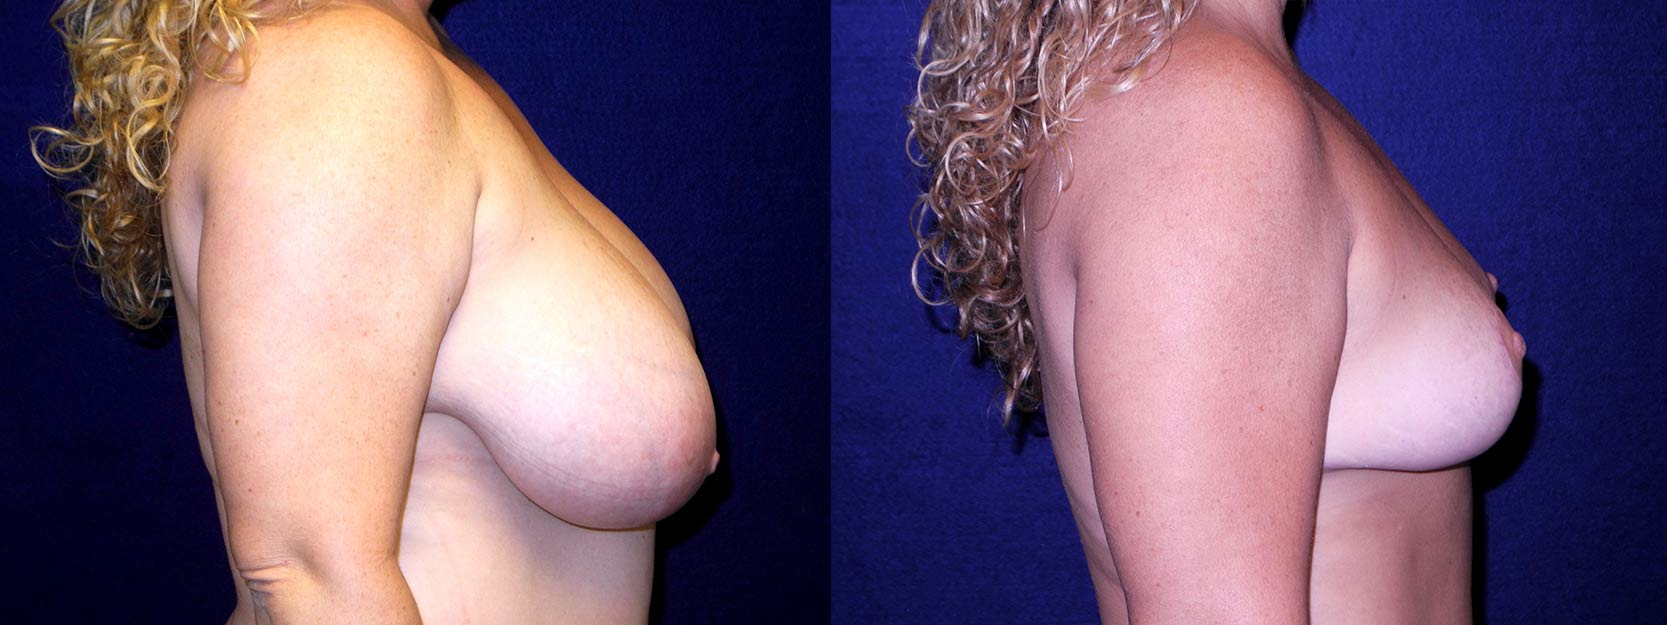 Right Profile View - Breast Reduction After Pregnancy